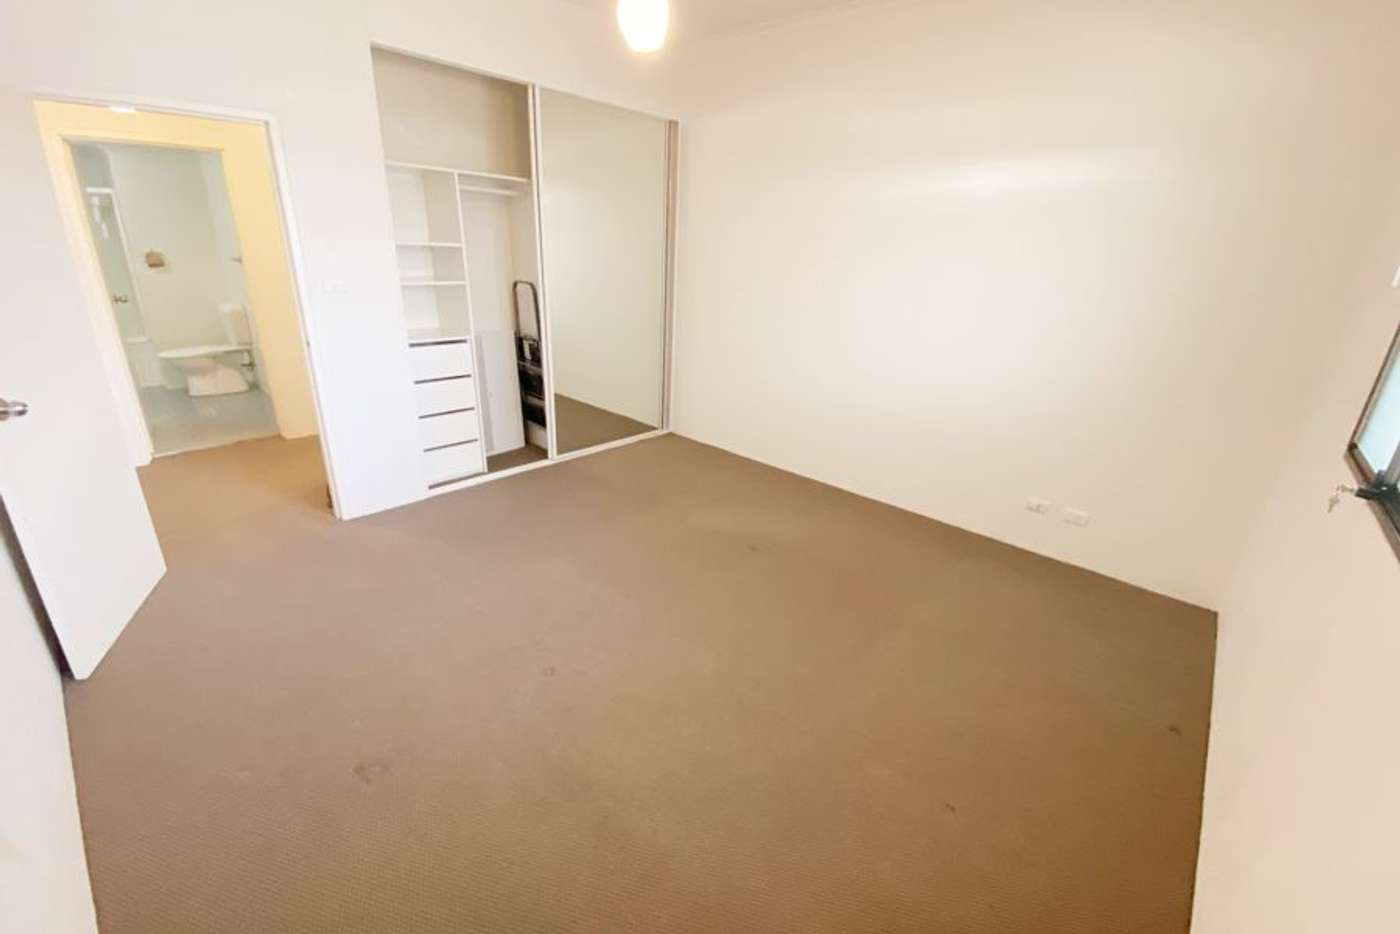 Seventh view of Homely unit listing, 408/284 Pacific Hwy, Greenwich NSW 2065